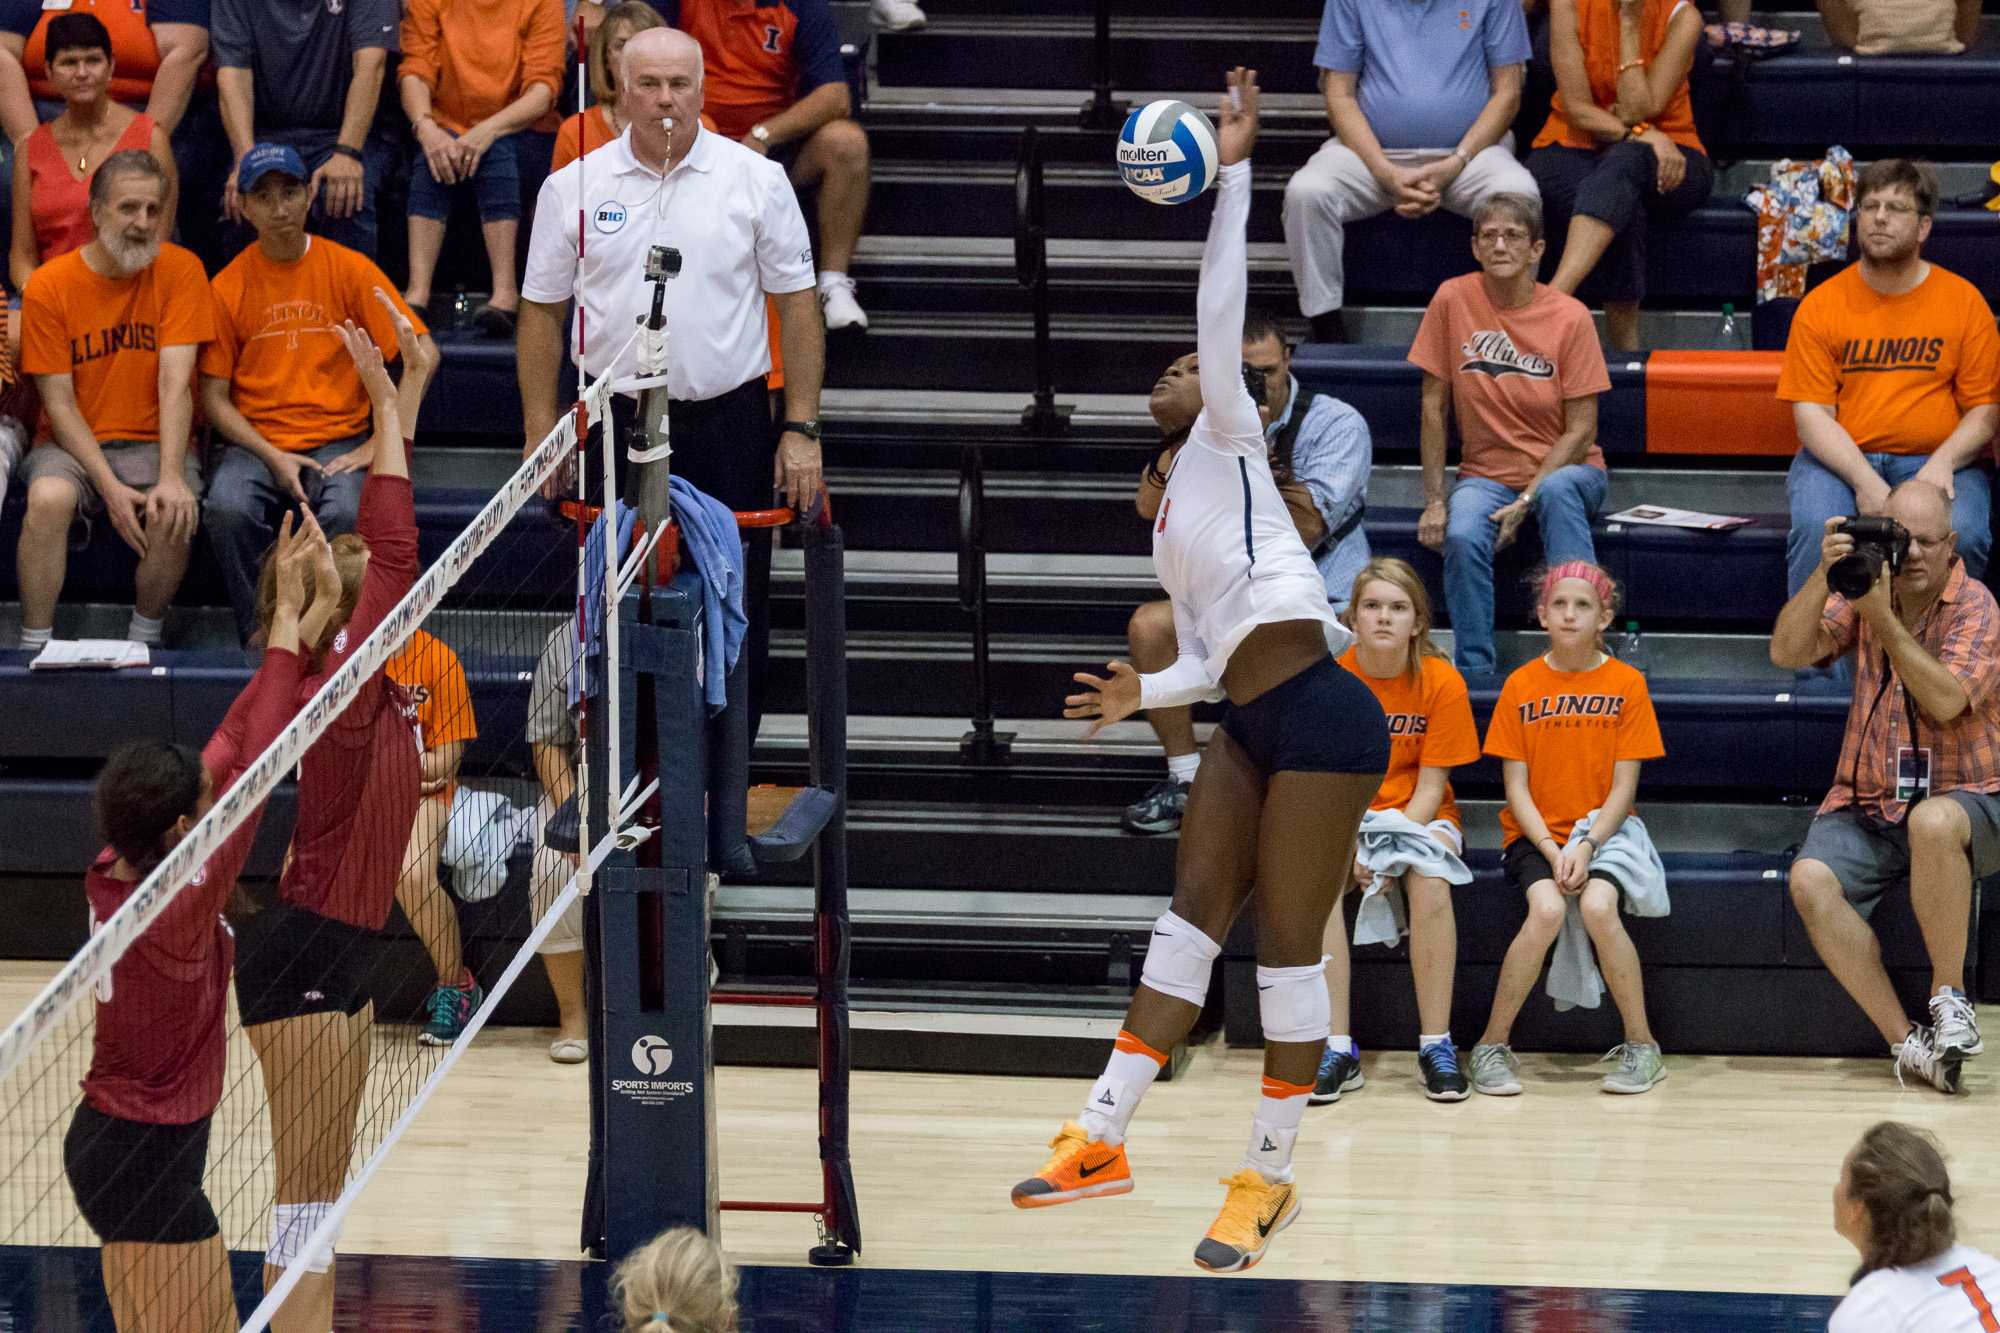 Illinois opposite hitter Naya Crittenden spikes the ball during the match against Arkansas at Huff Hall on Friday, August 26. The Illini won 3-0.